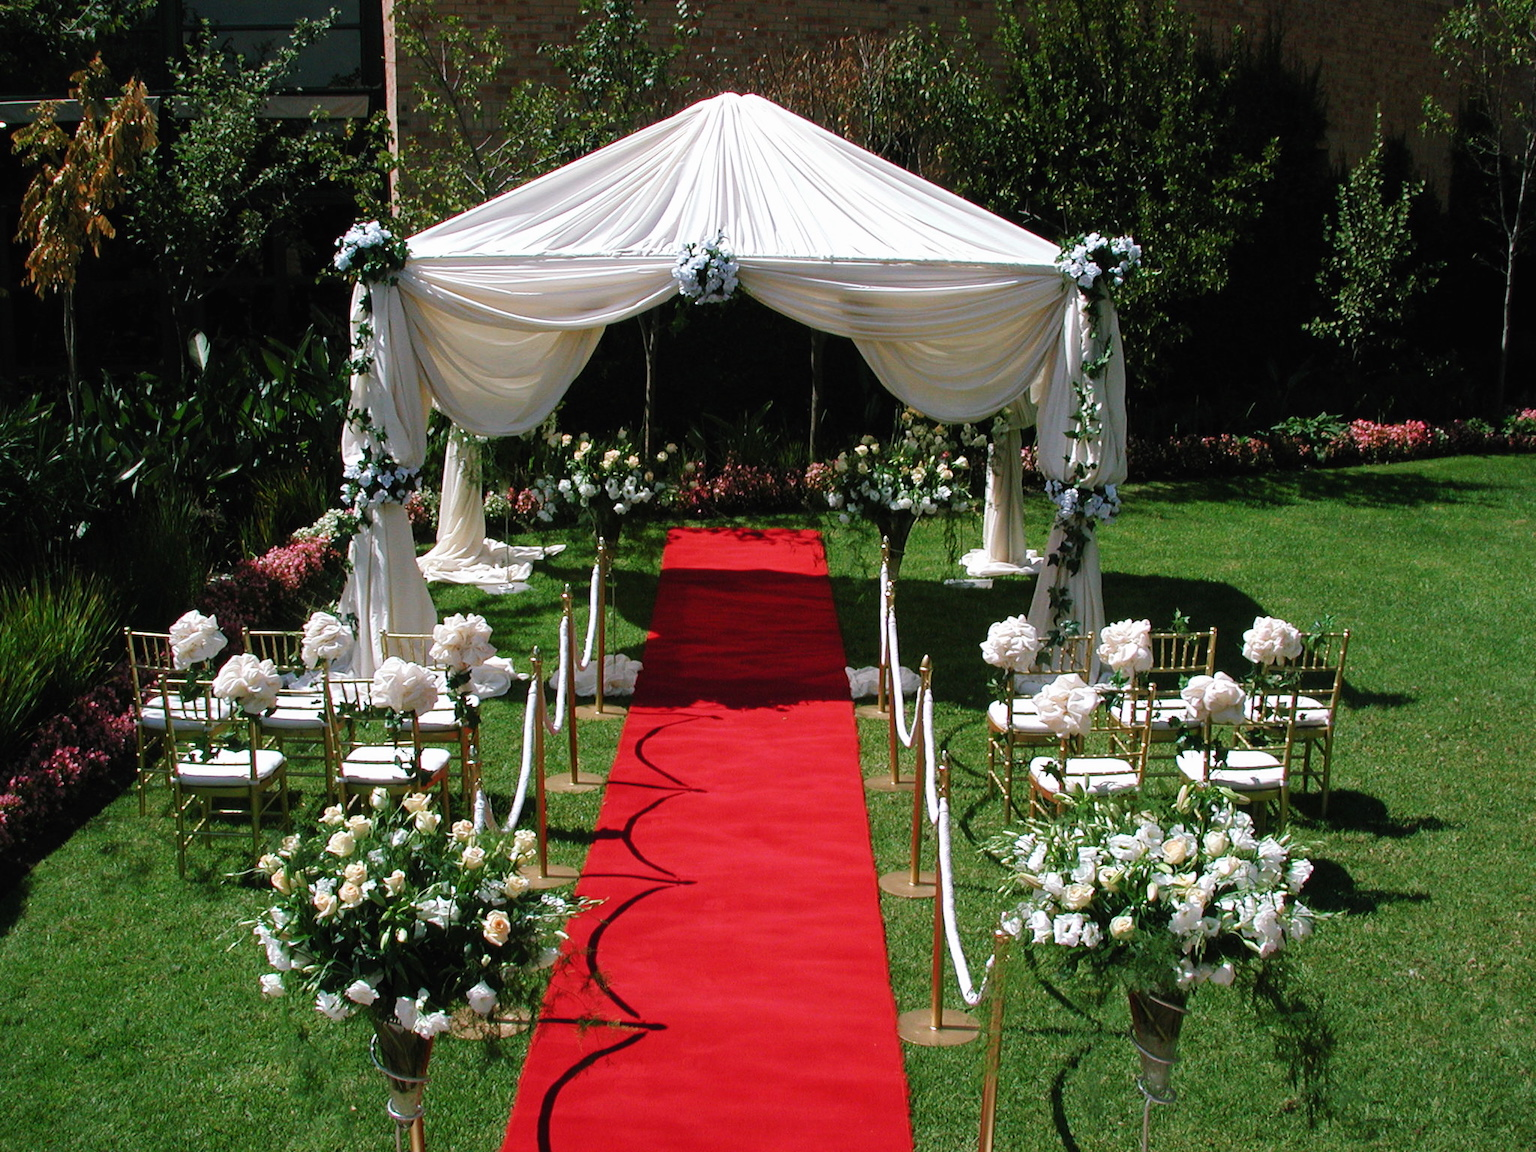 if-you-like-the-grass-view-then-you-can-set-the-wedding-in-the-garden-with-best-design-and-outdoor-wedding-reception-ideas